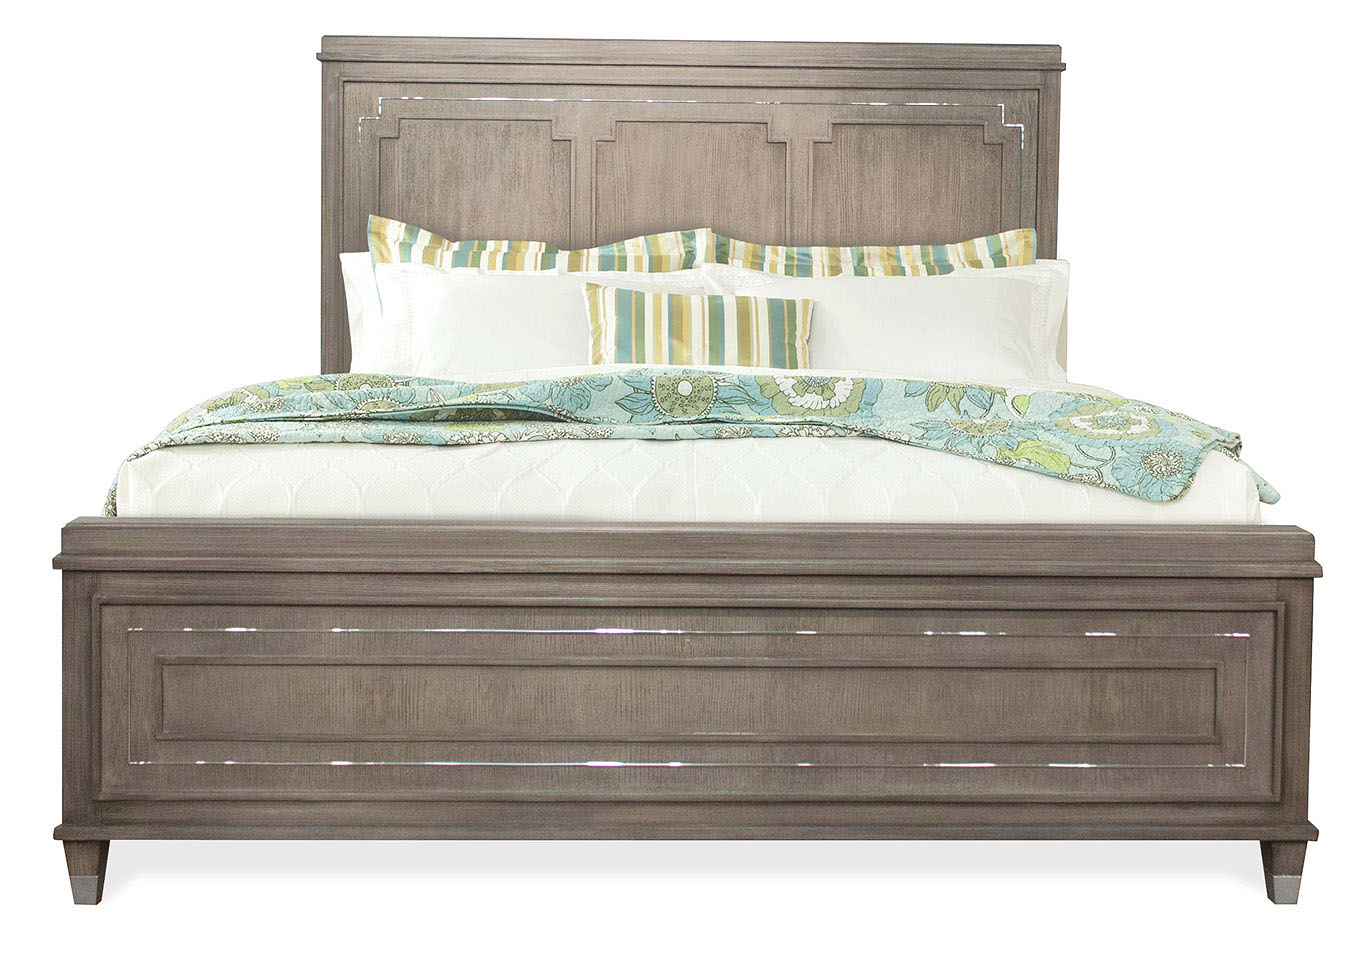 Penland\'s Furniture Dara Two Gray Wash King Panel Bed